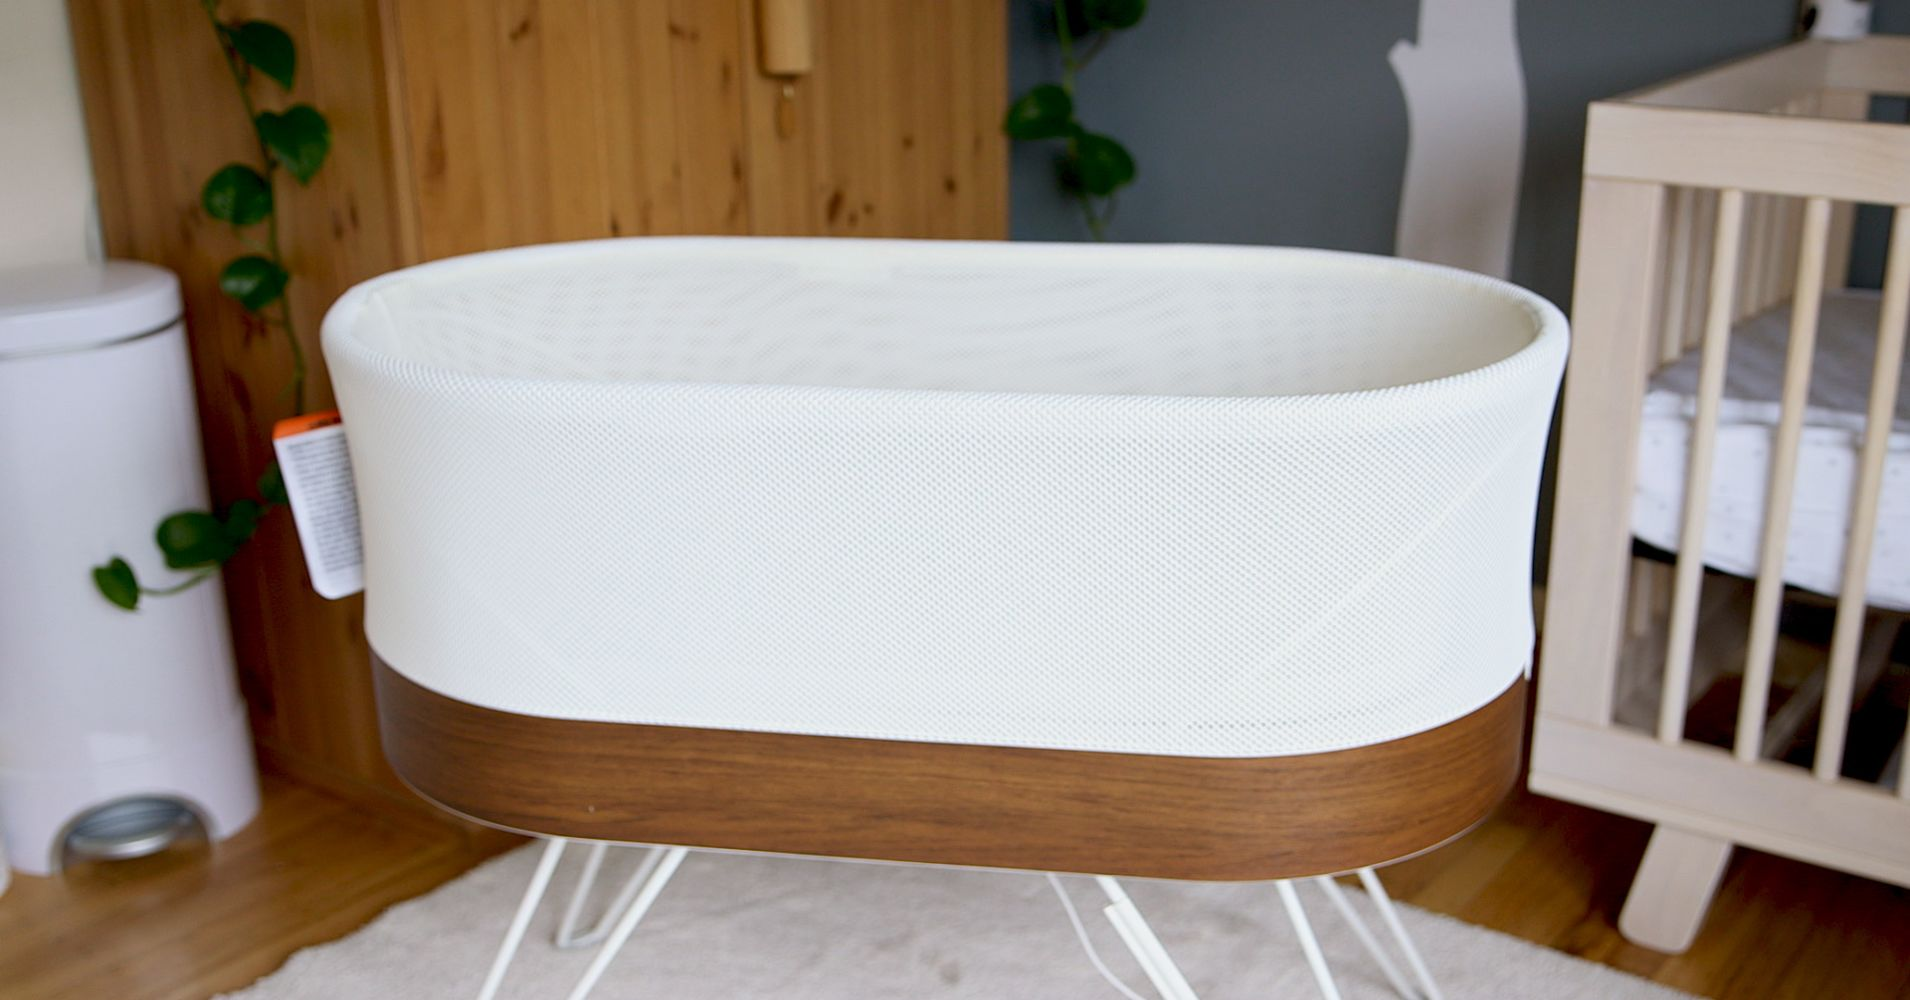 This 1 300 Smart Crib That Rocks Your Baby To Sleep Is